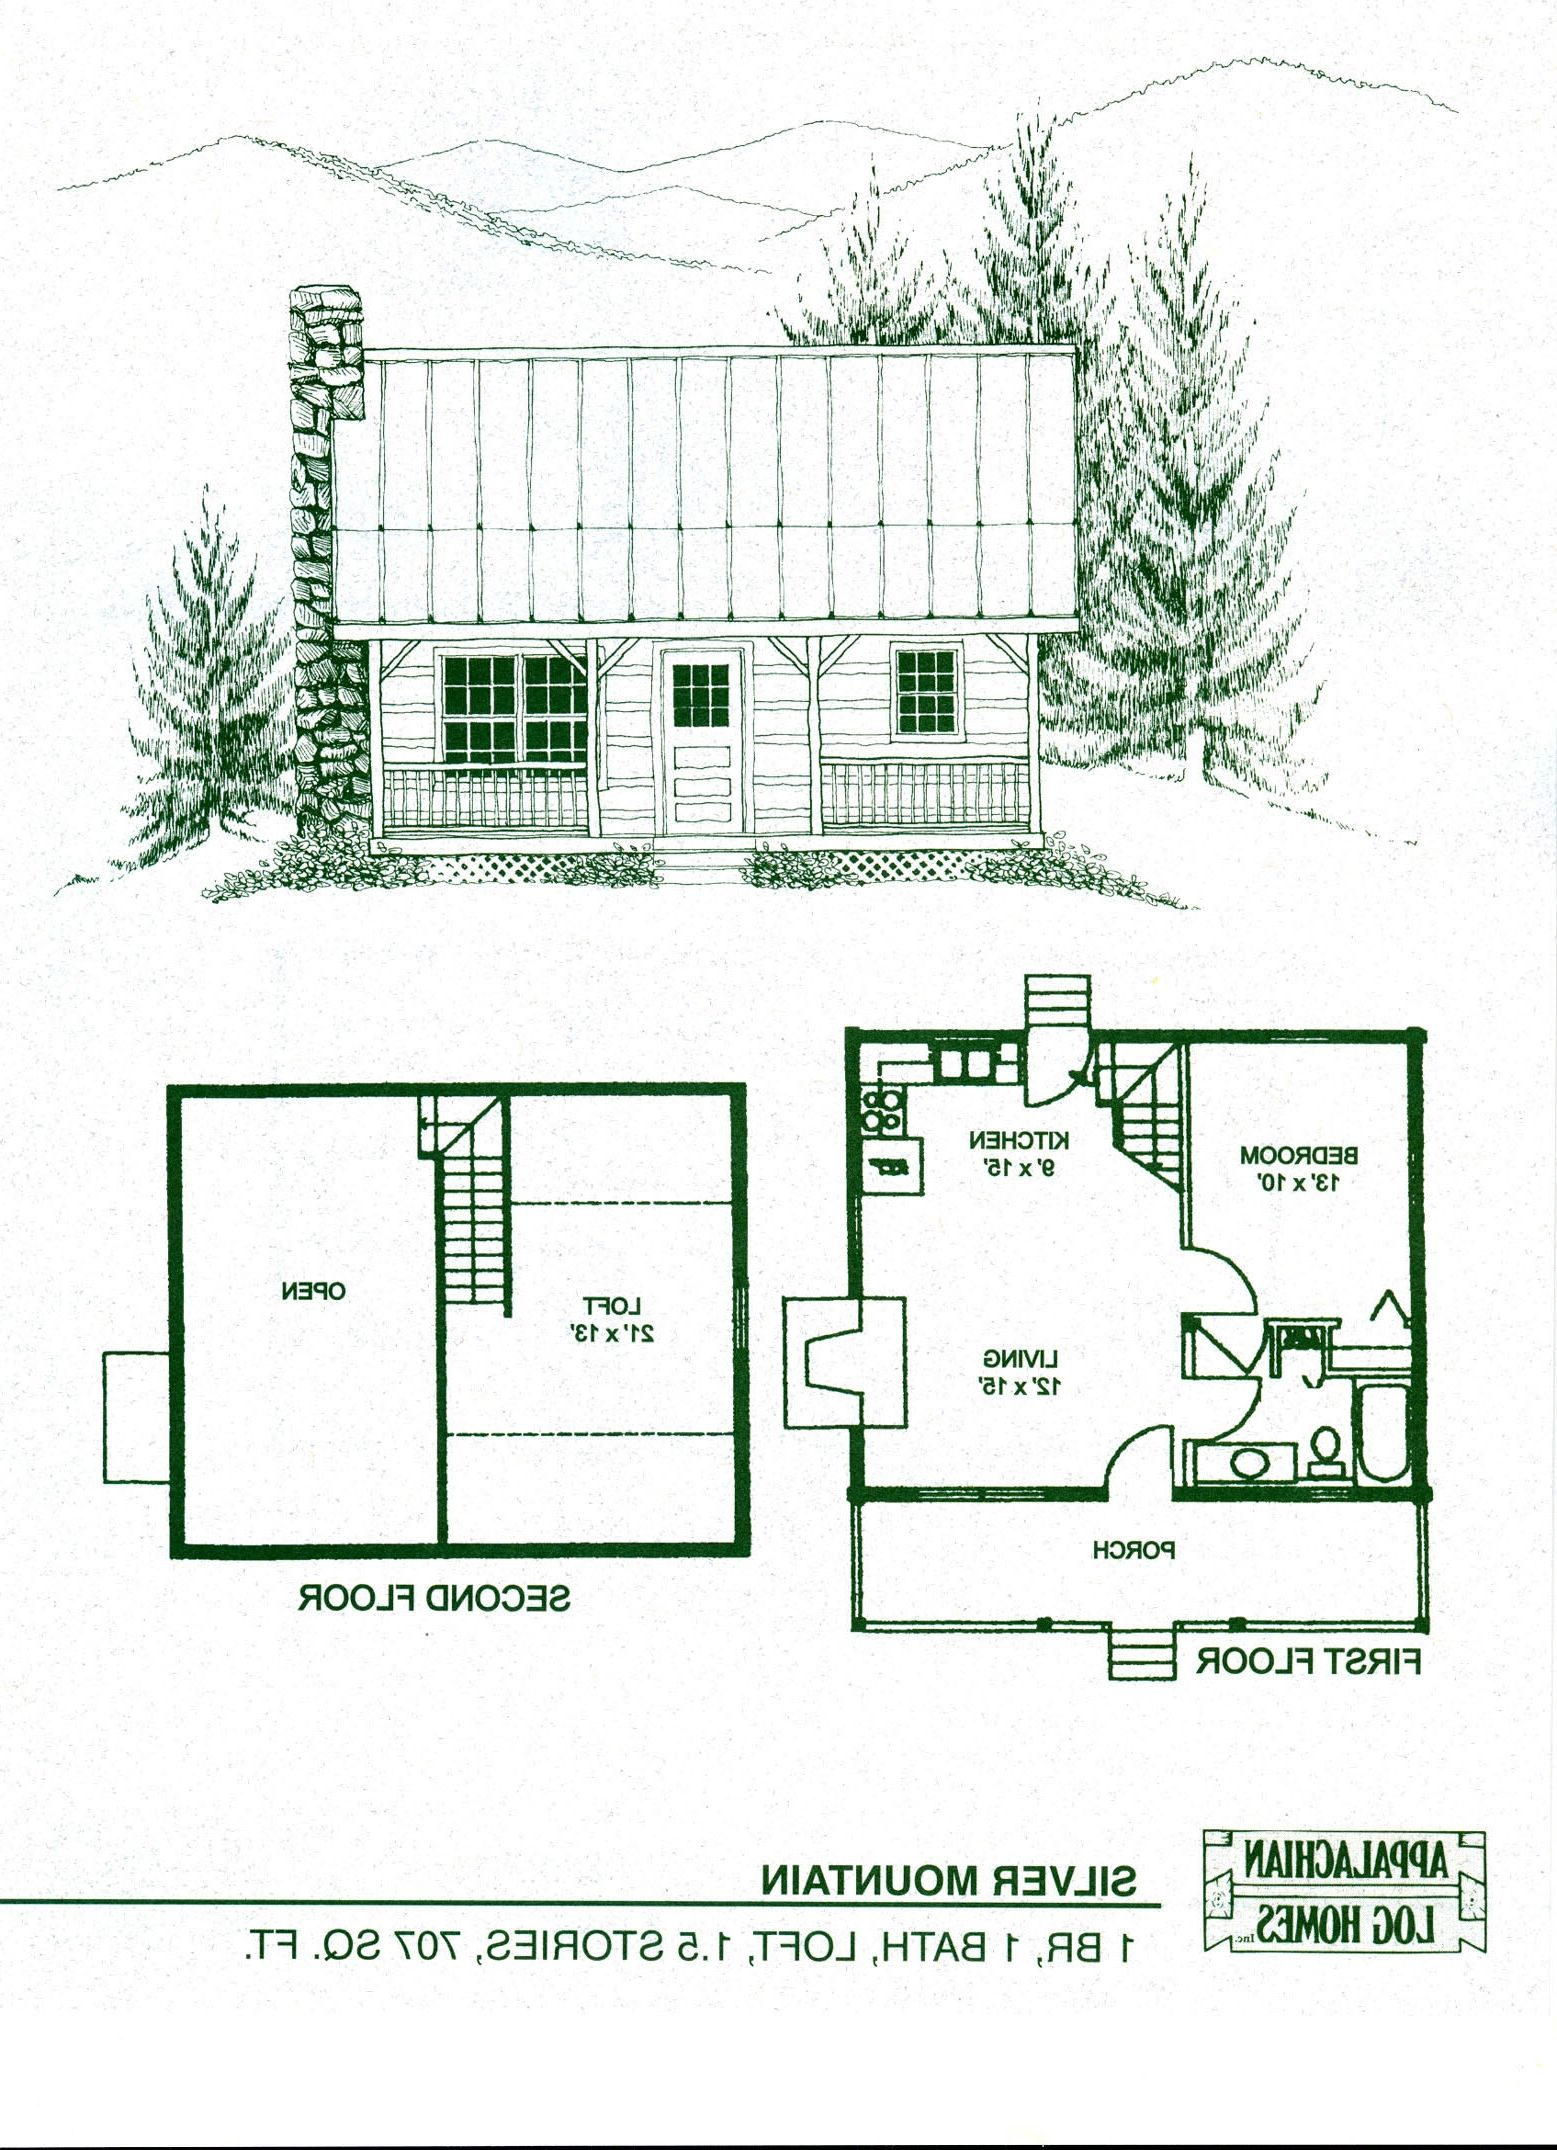 cabins with lofts floor plans best ideas about log cabin on best tiny house plan design ideas id=90884